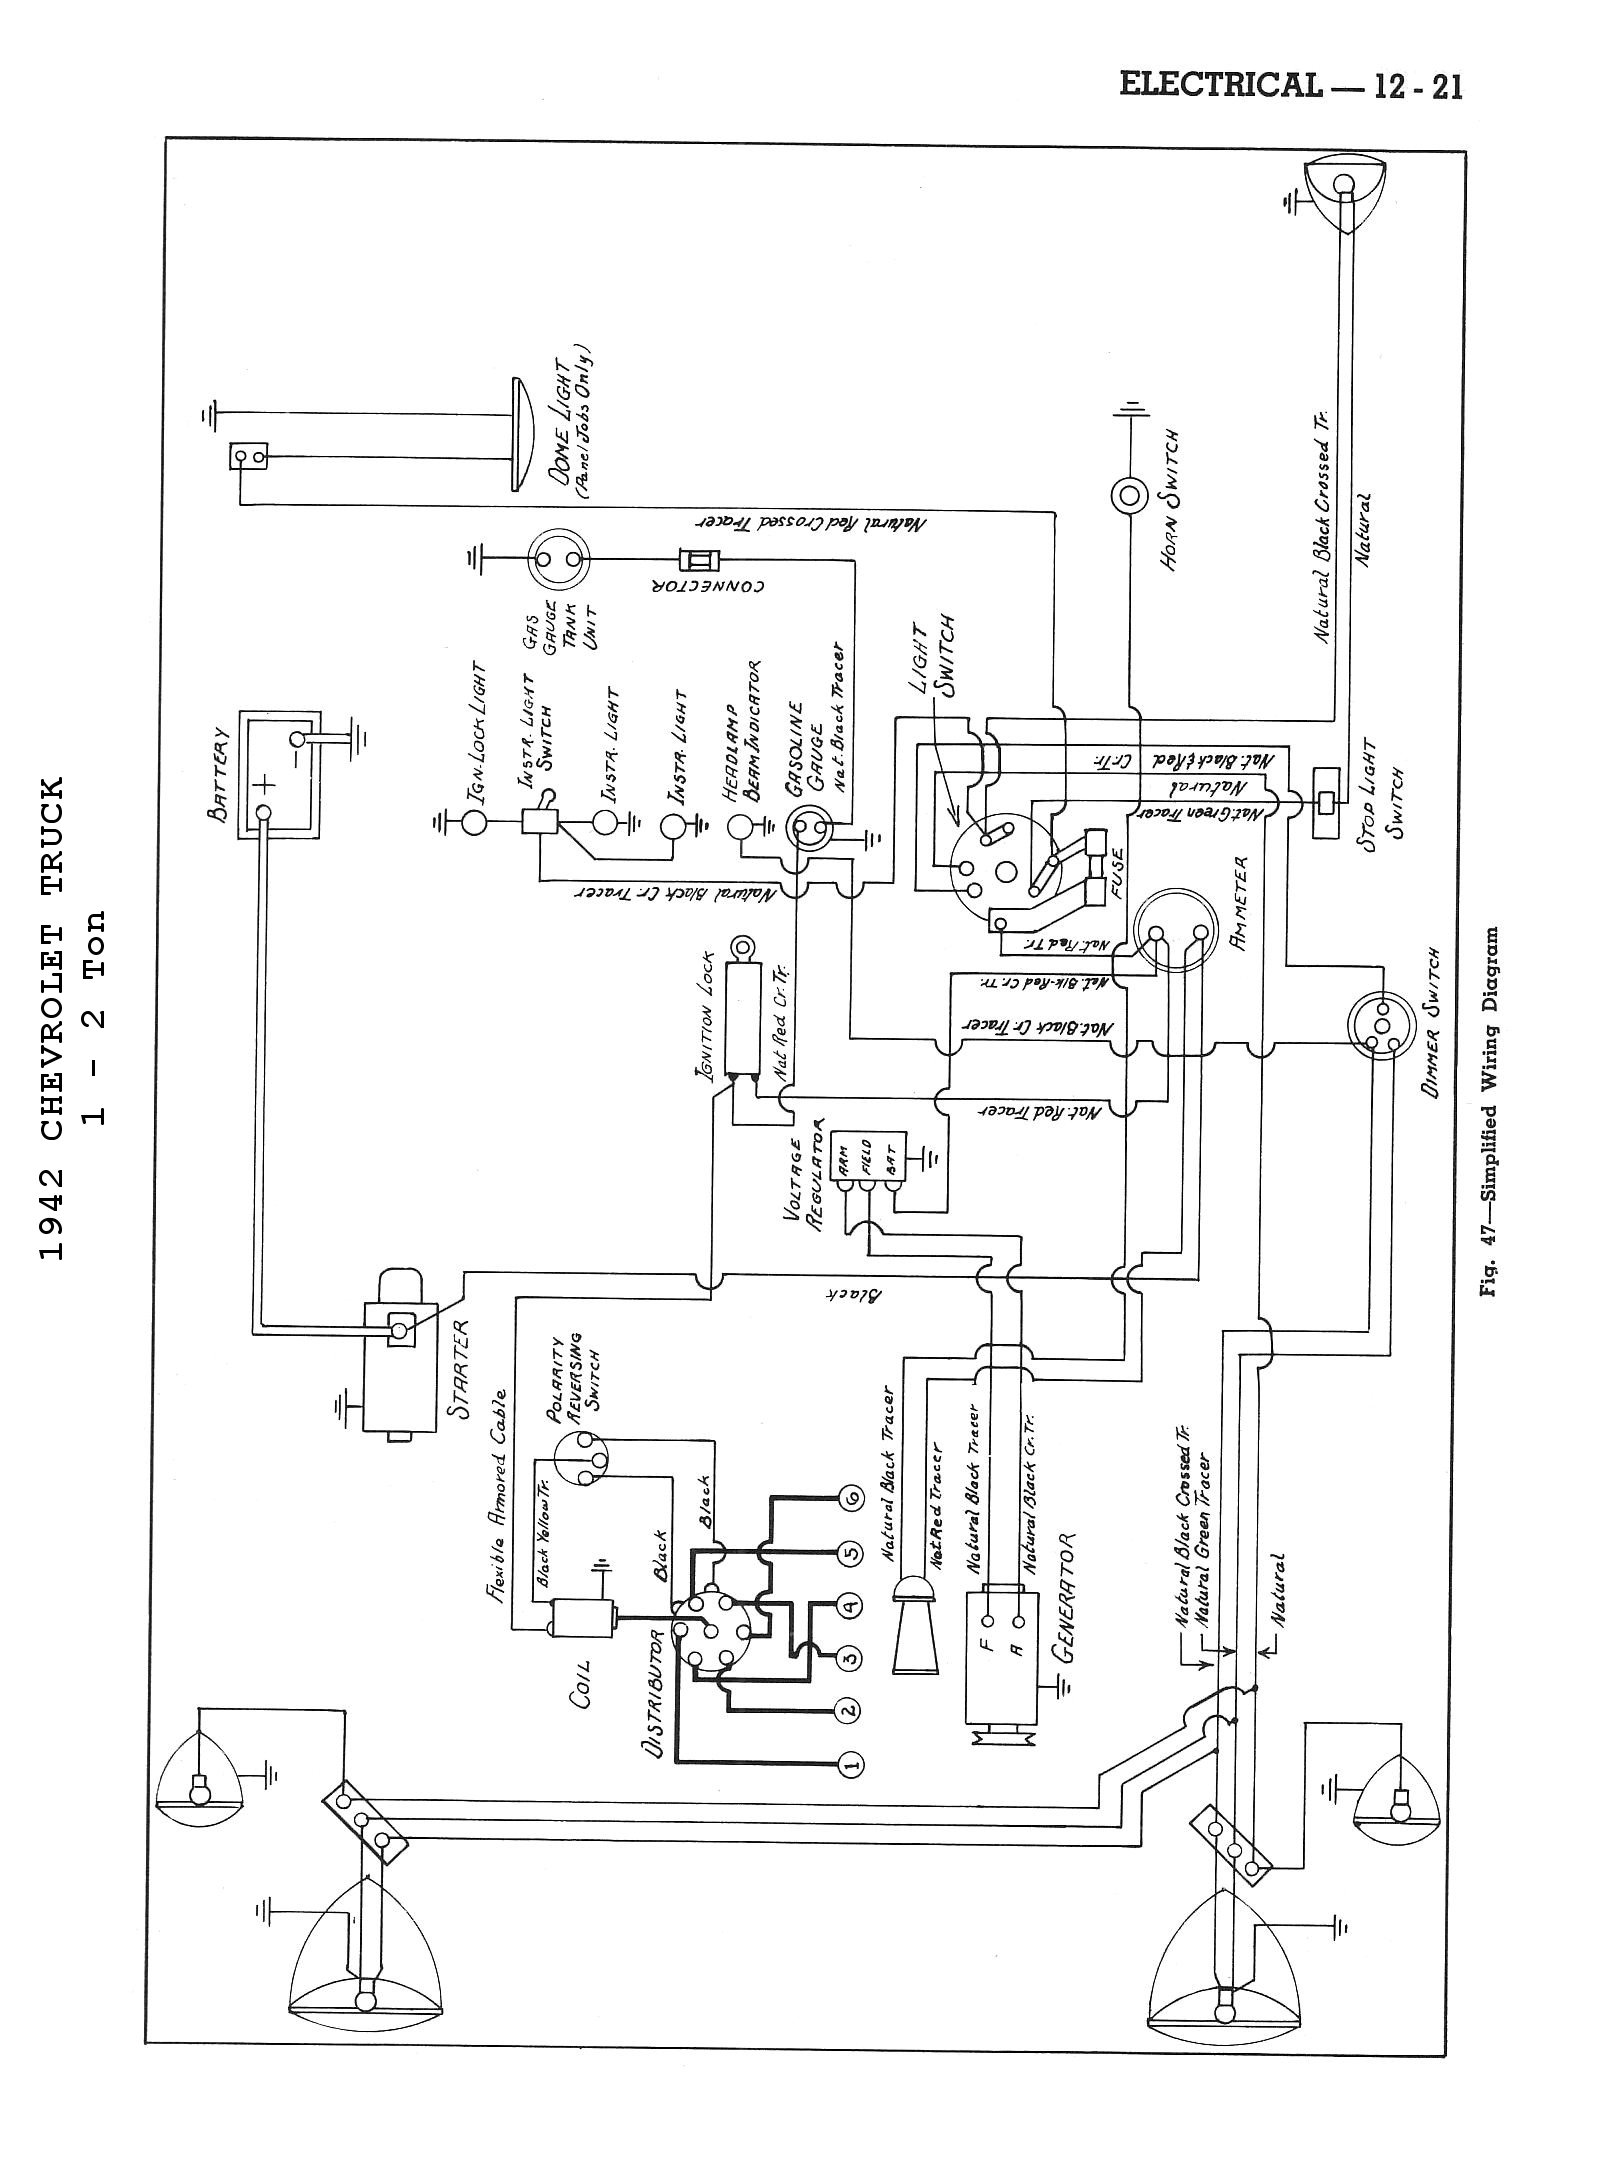 2003 Mazda B3000 Wiring Diagram Manual Of 95 B2300 Fuse Box Chevy Diagrams Radio